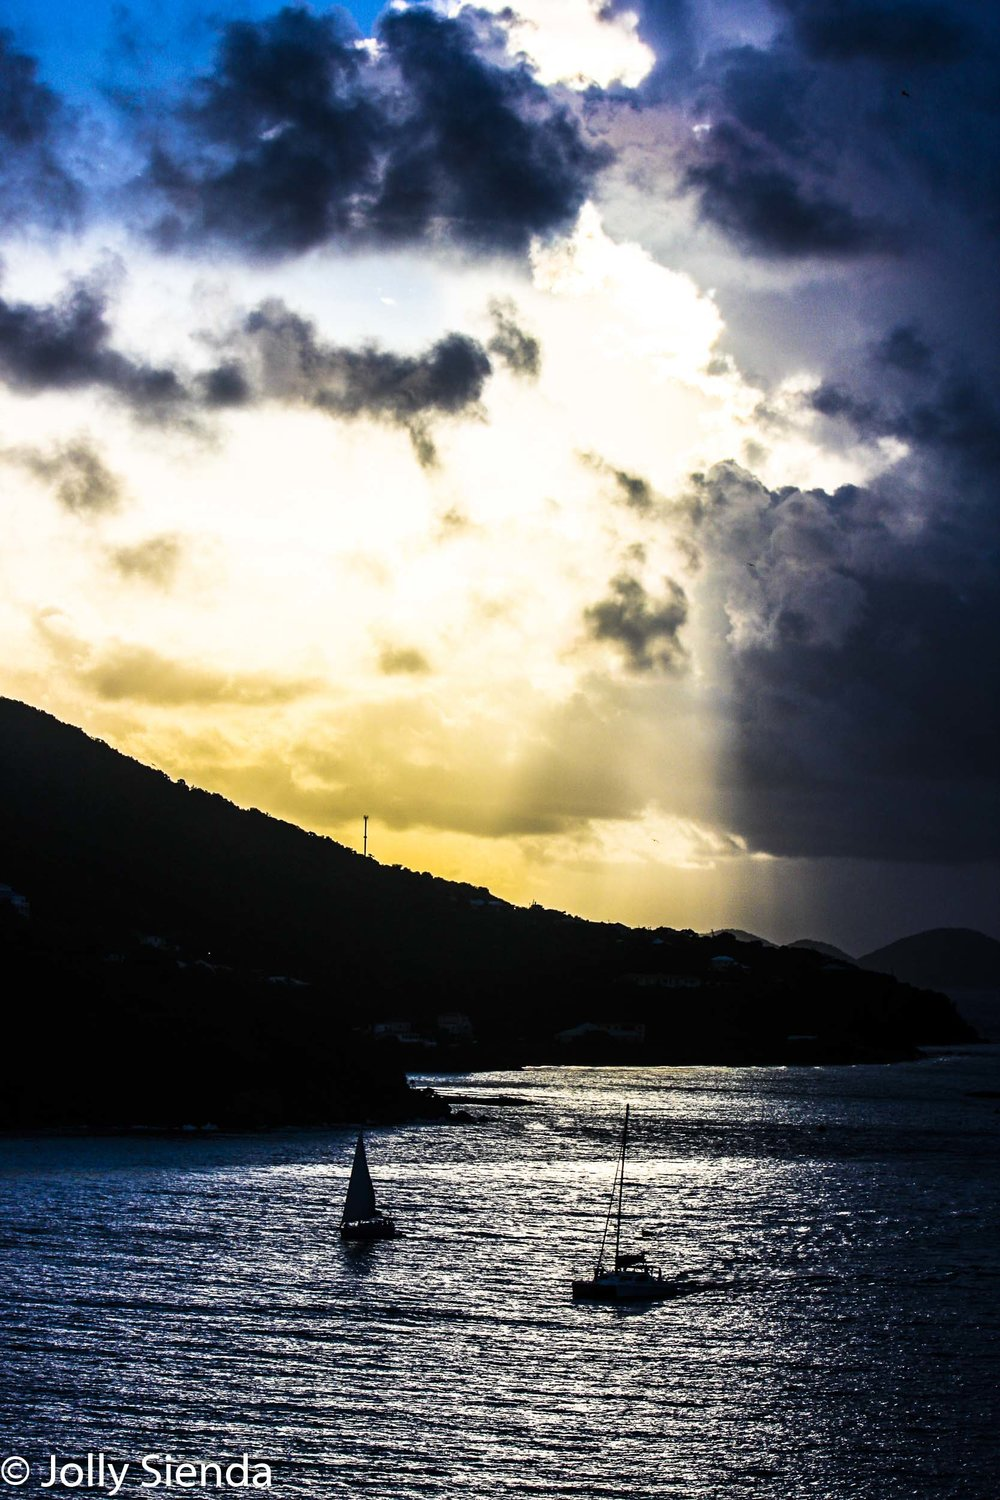 The sun breaks through clouds sending light onto the water, boat